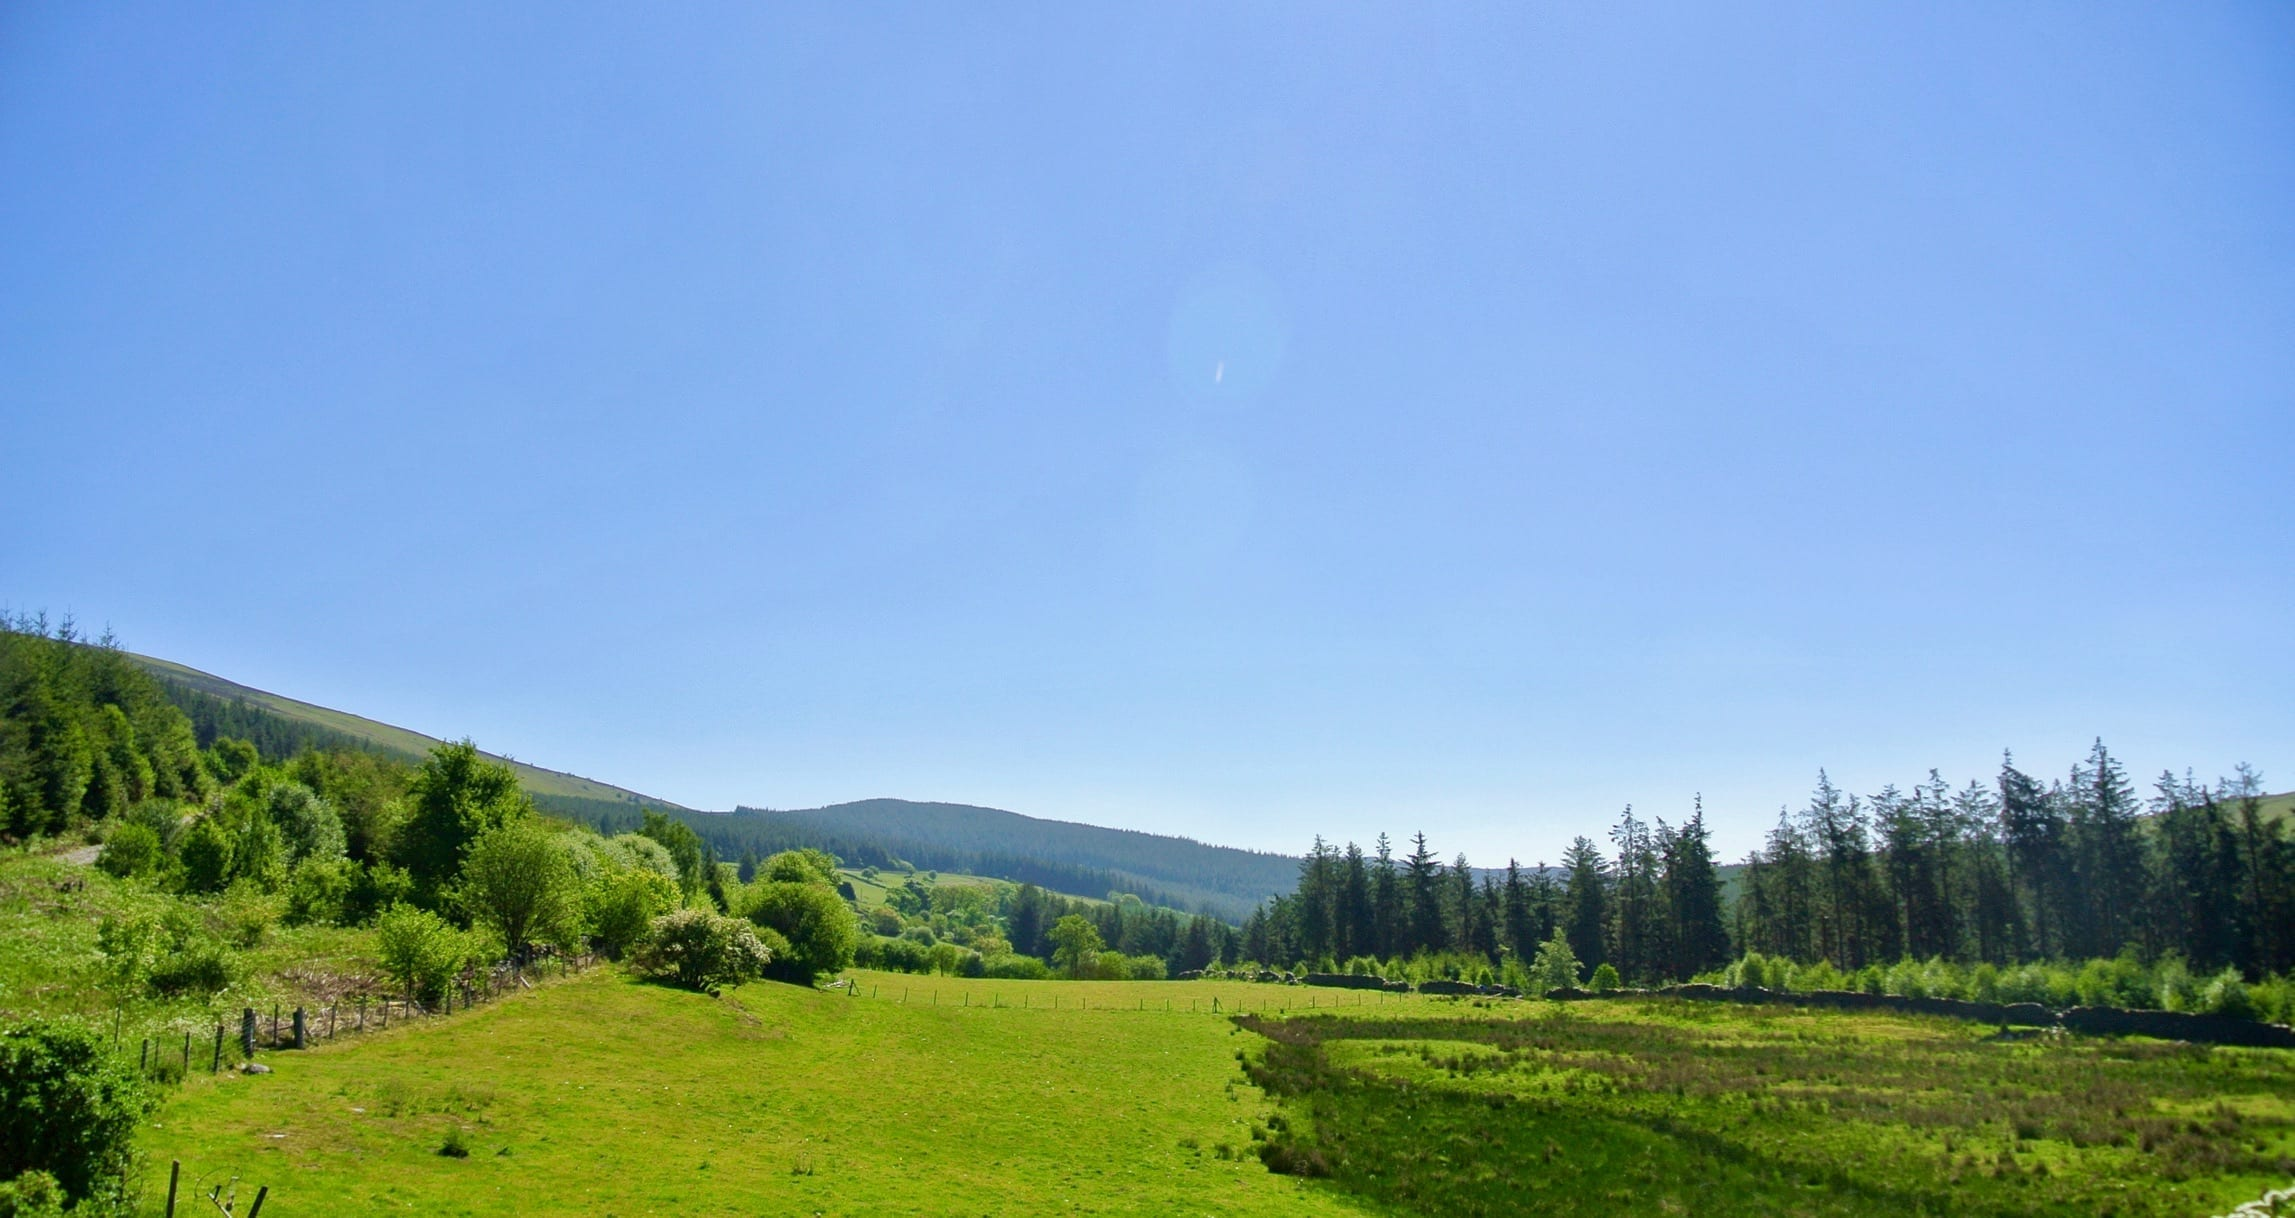 View east to moel fferna from celyn coed off grid sustainable eco glampsite and glamping